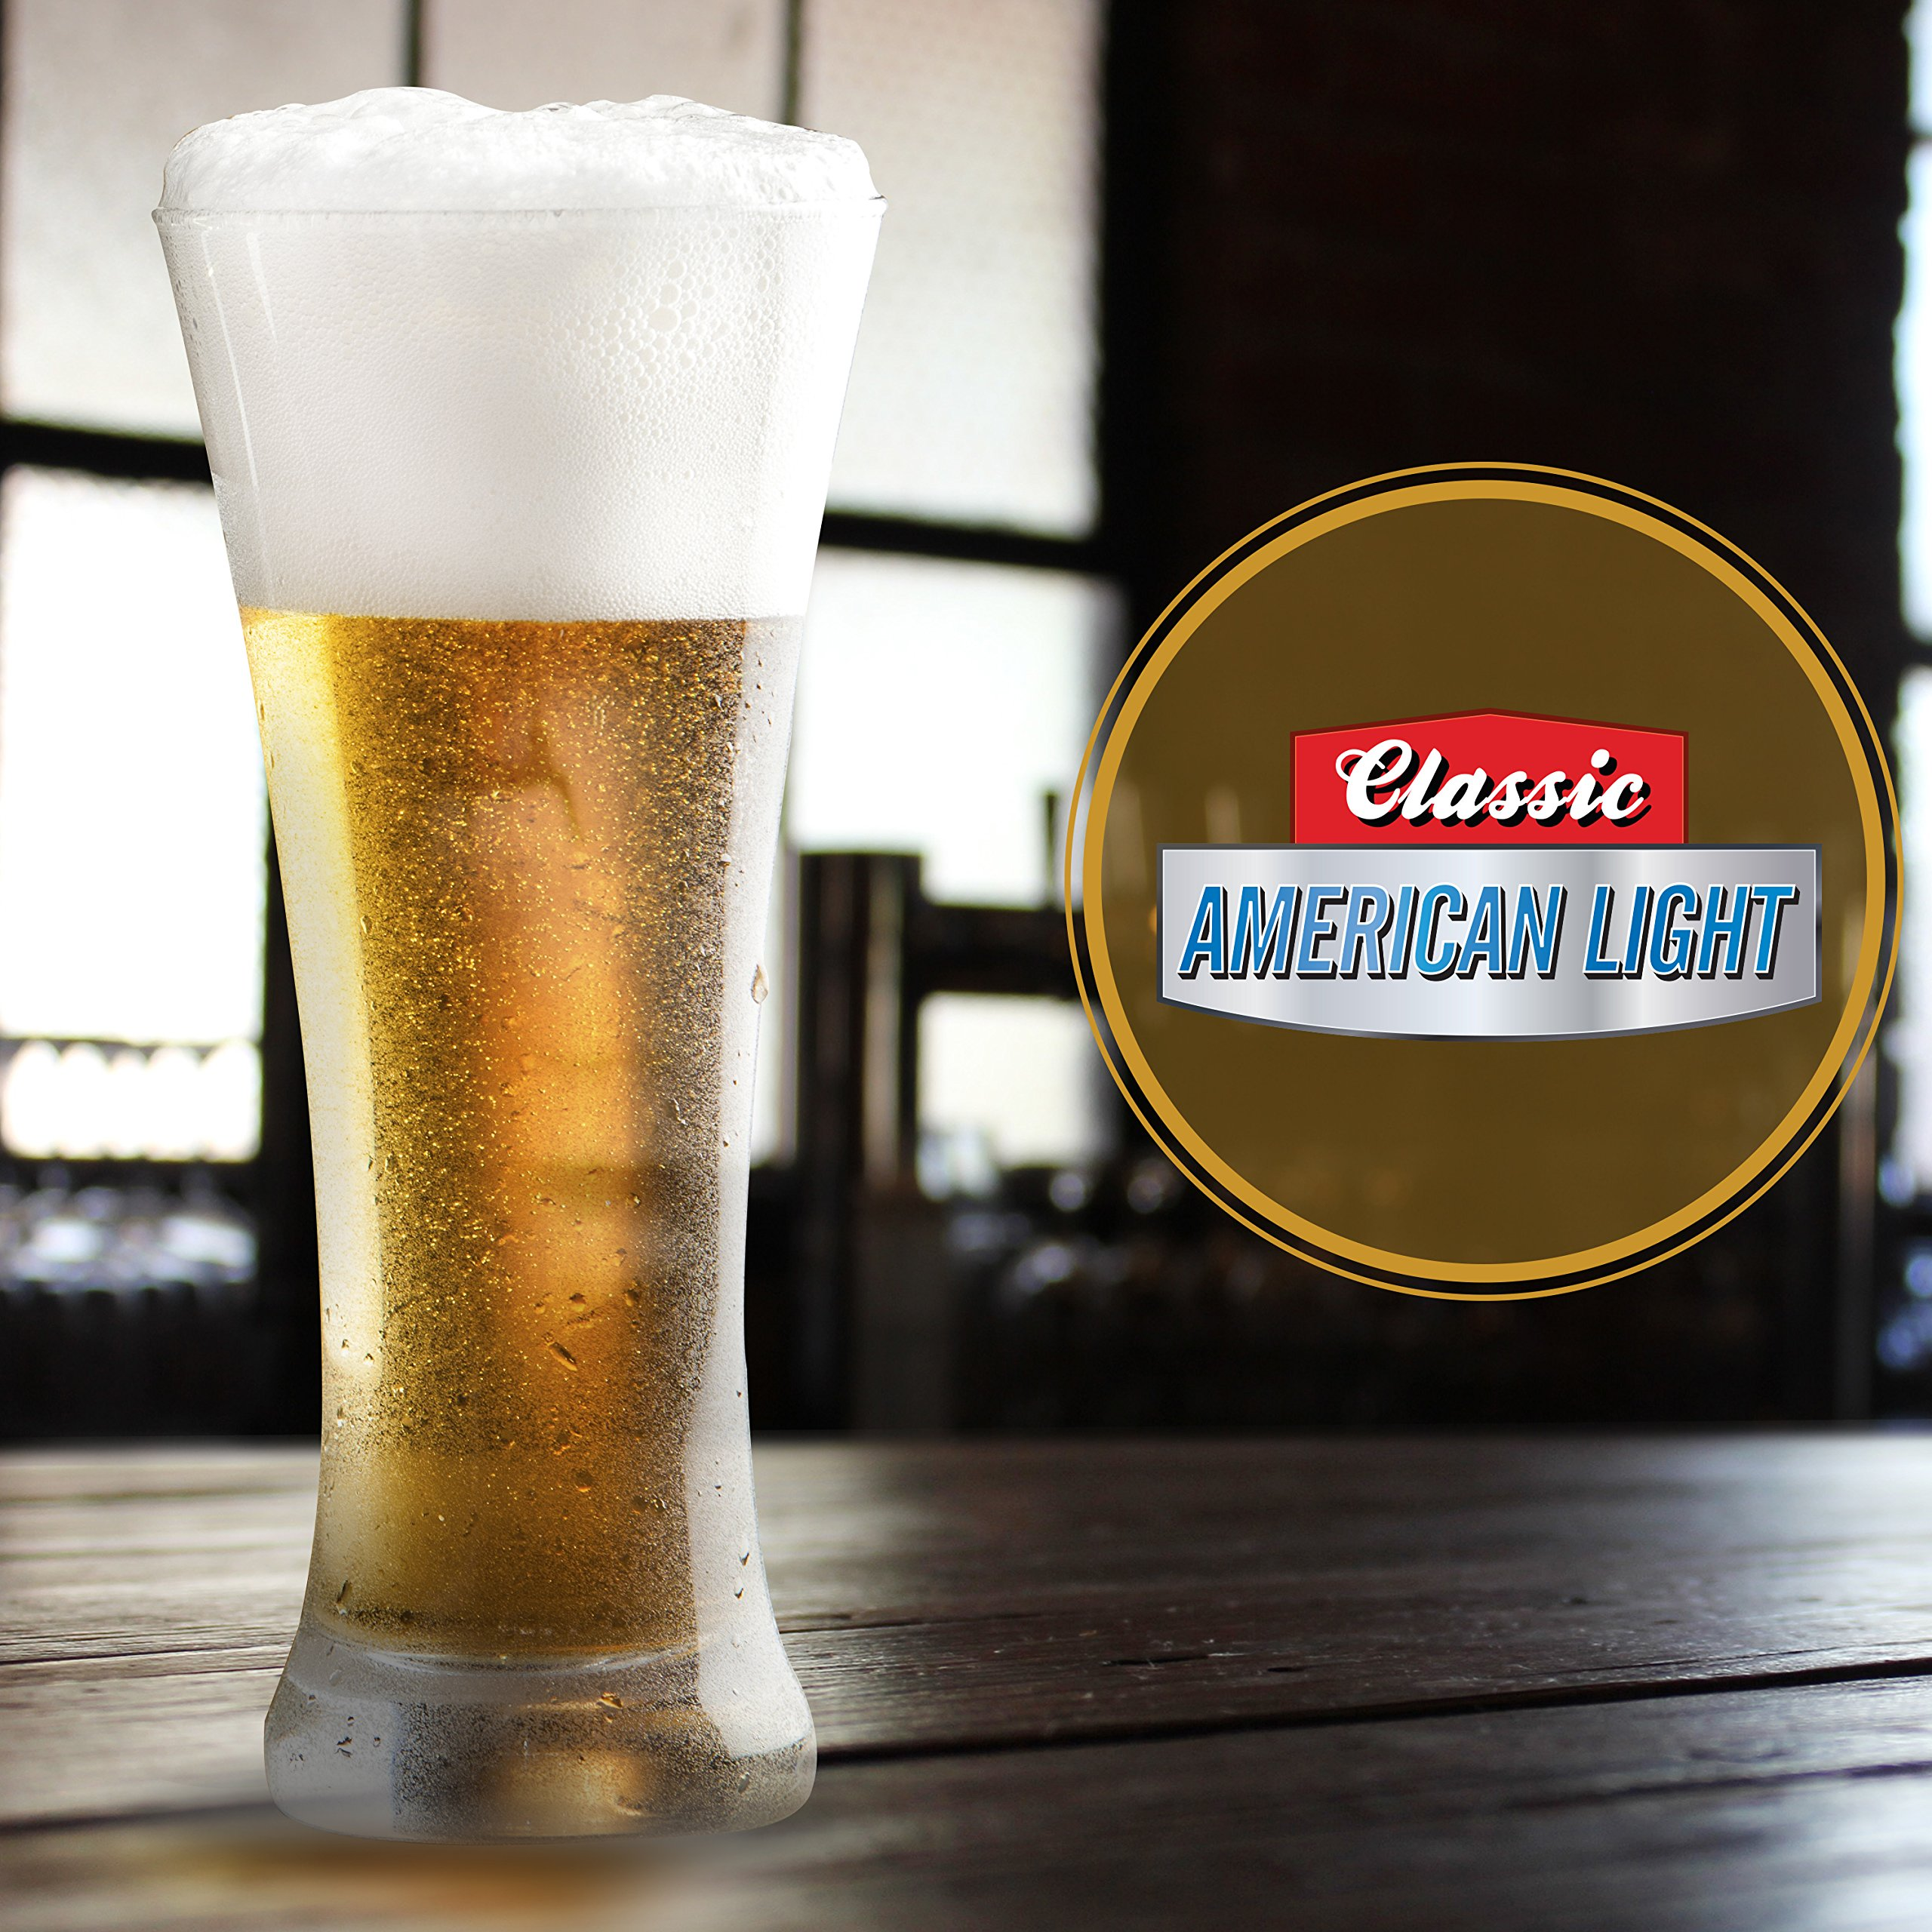 Mr. Beer Classic American Light 2 Gallon Homebrewing Craft Beer Making Refill Kit with Sanitizer, Yeast and All Grain Brewing Extract by Mr. Beer (Image #2)